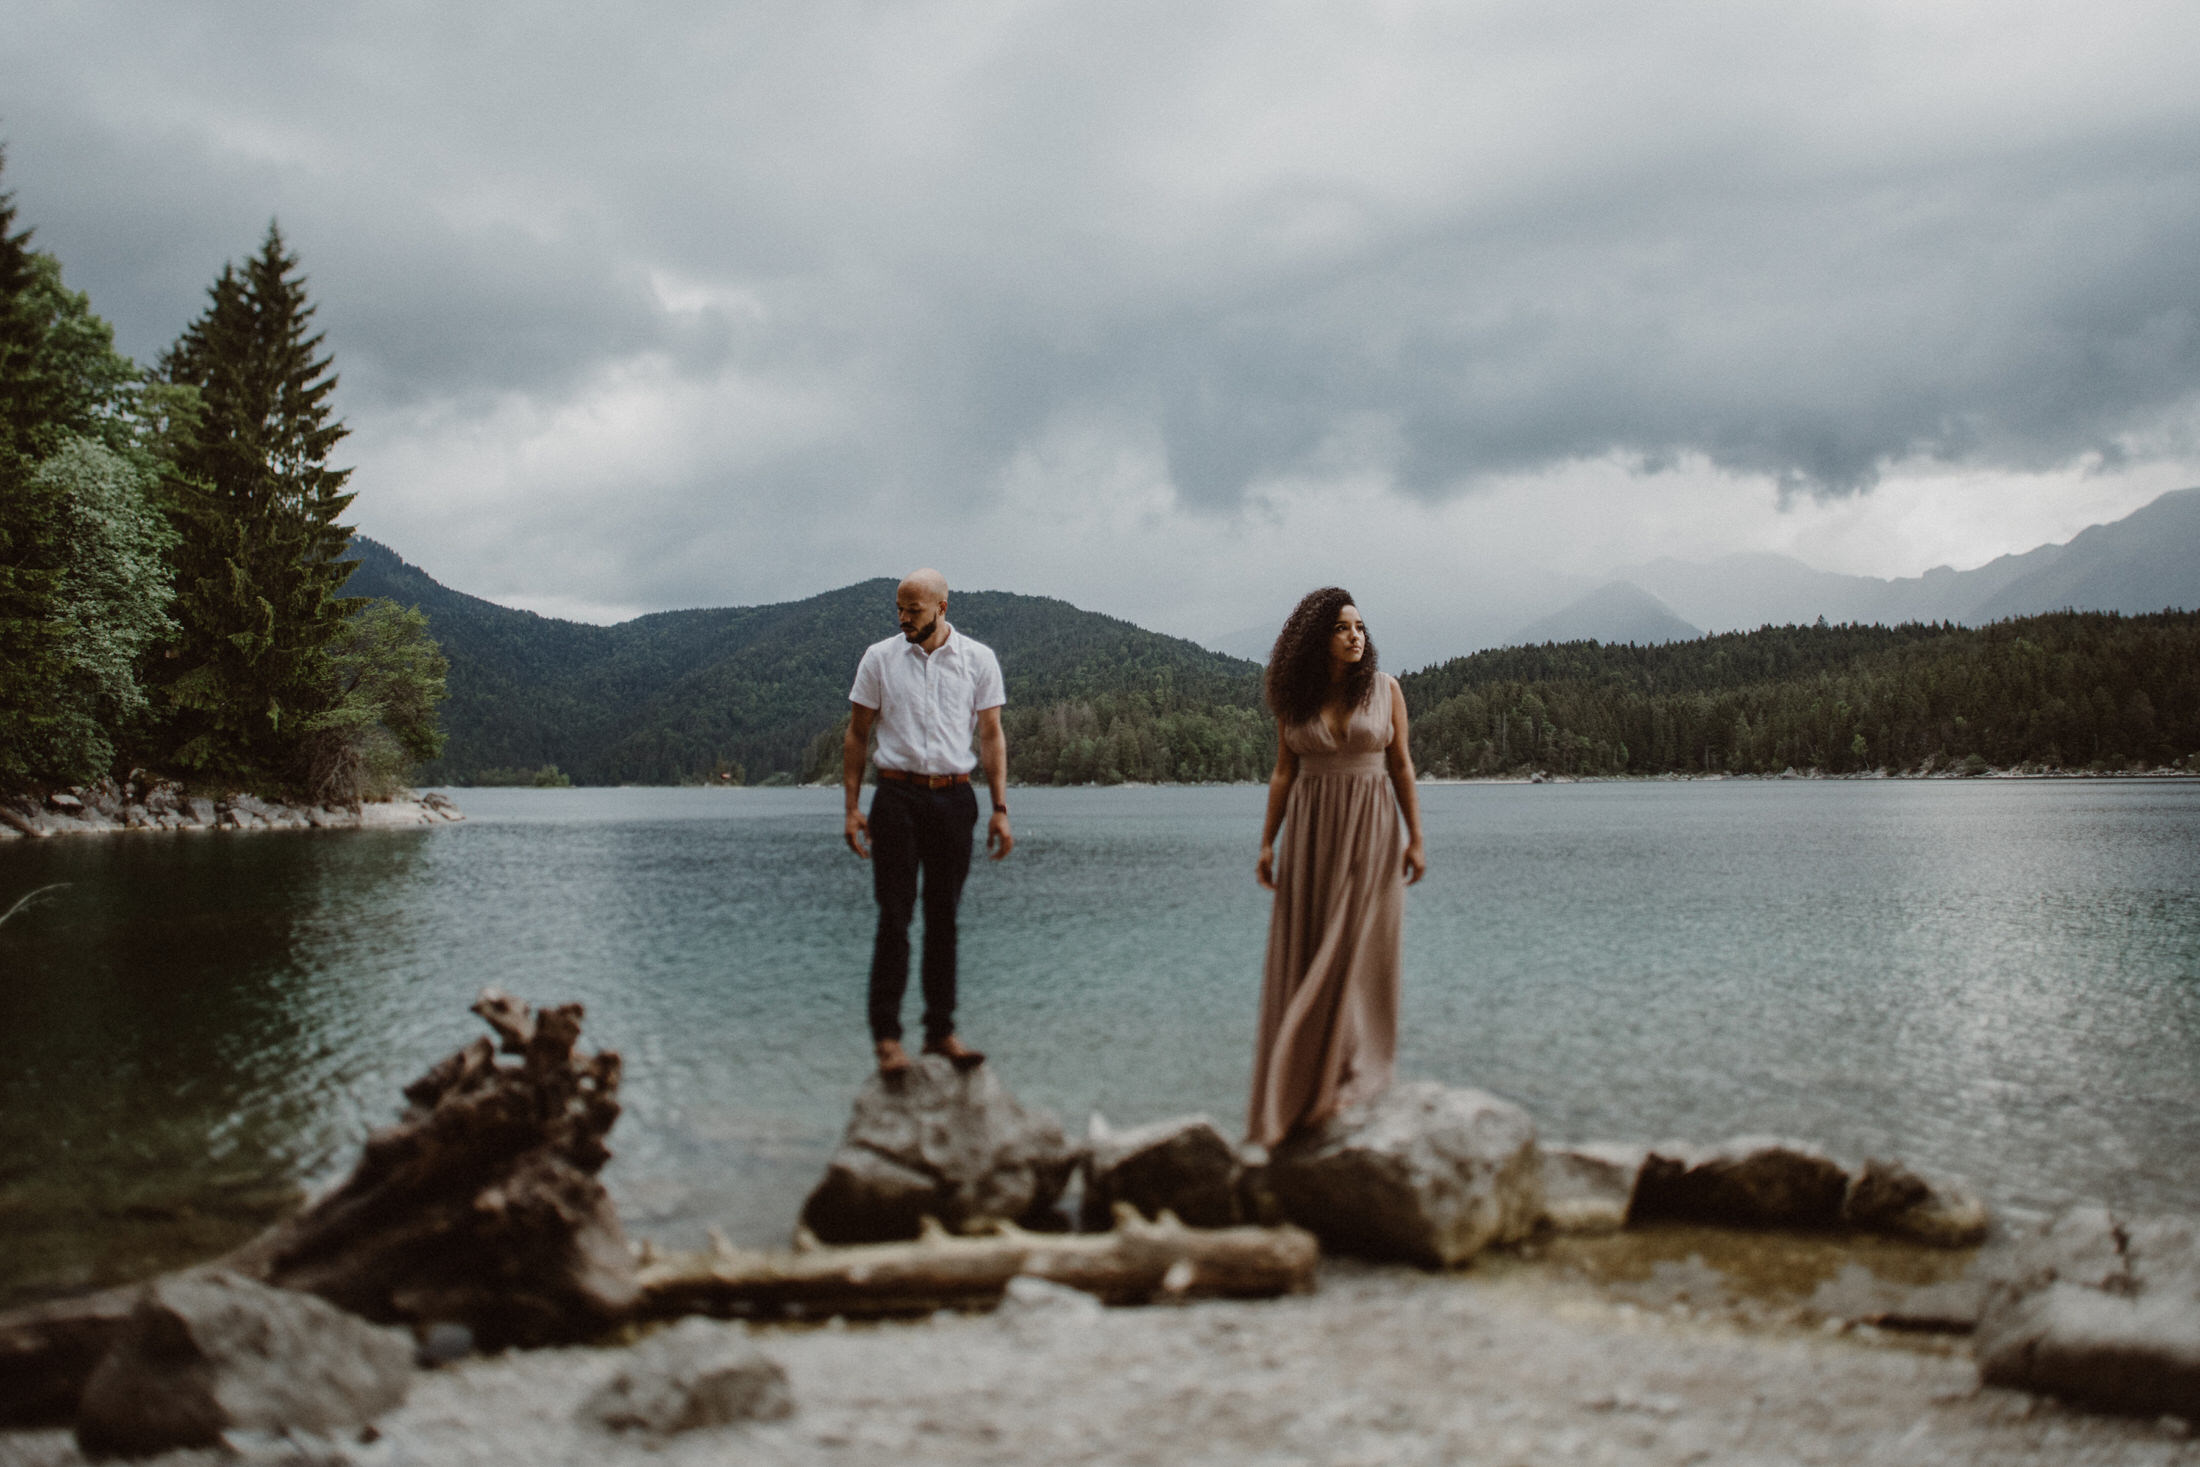 breanna-and-justin-engagement-photos-eibsee-garmisch-partenkirchen-0021